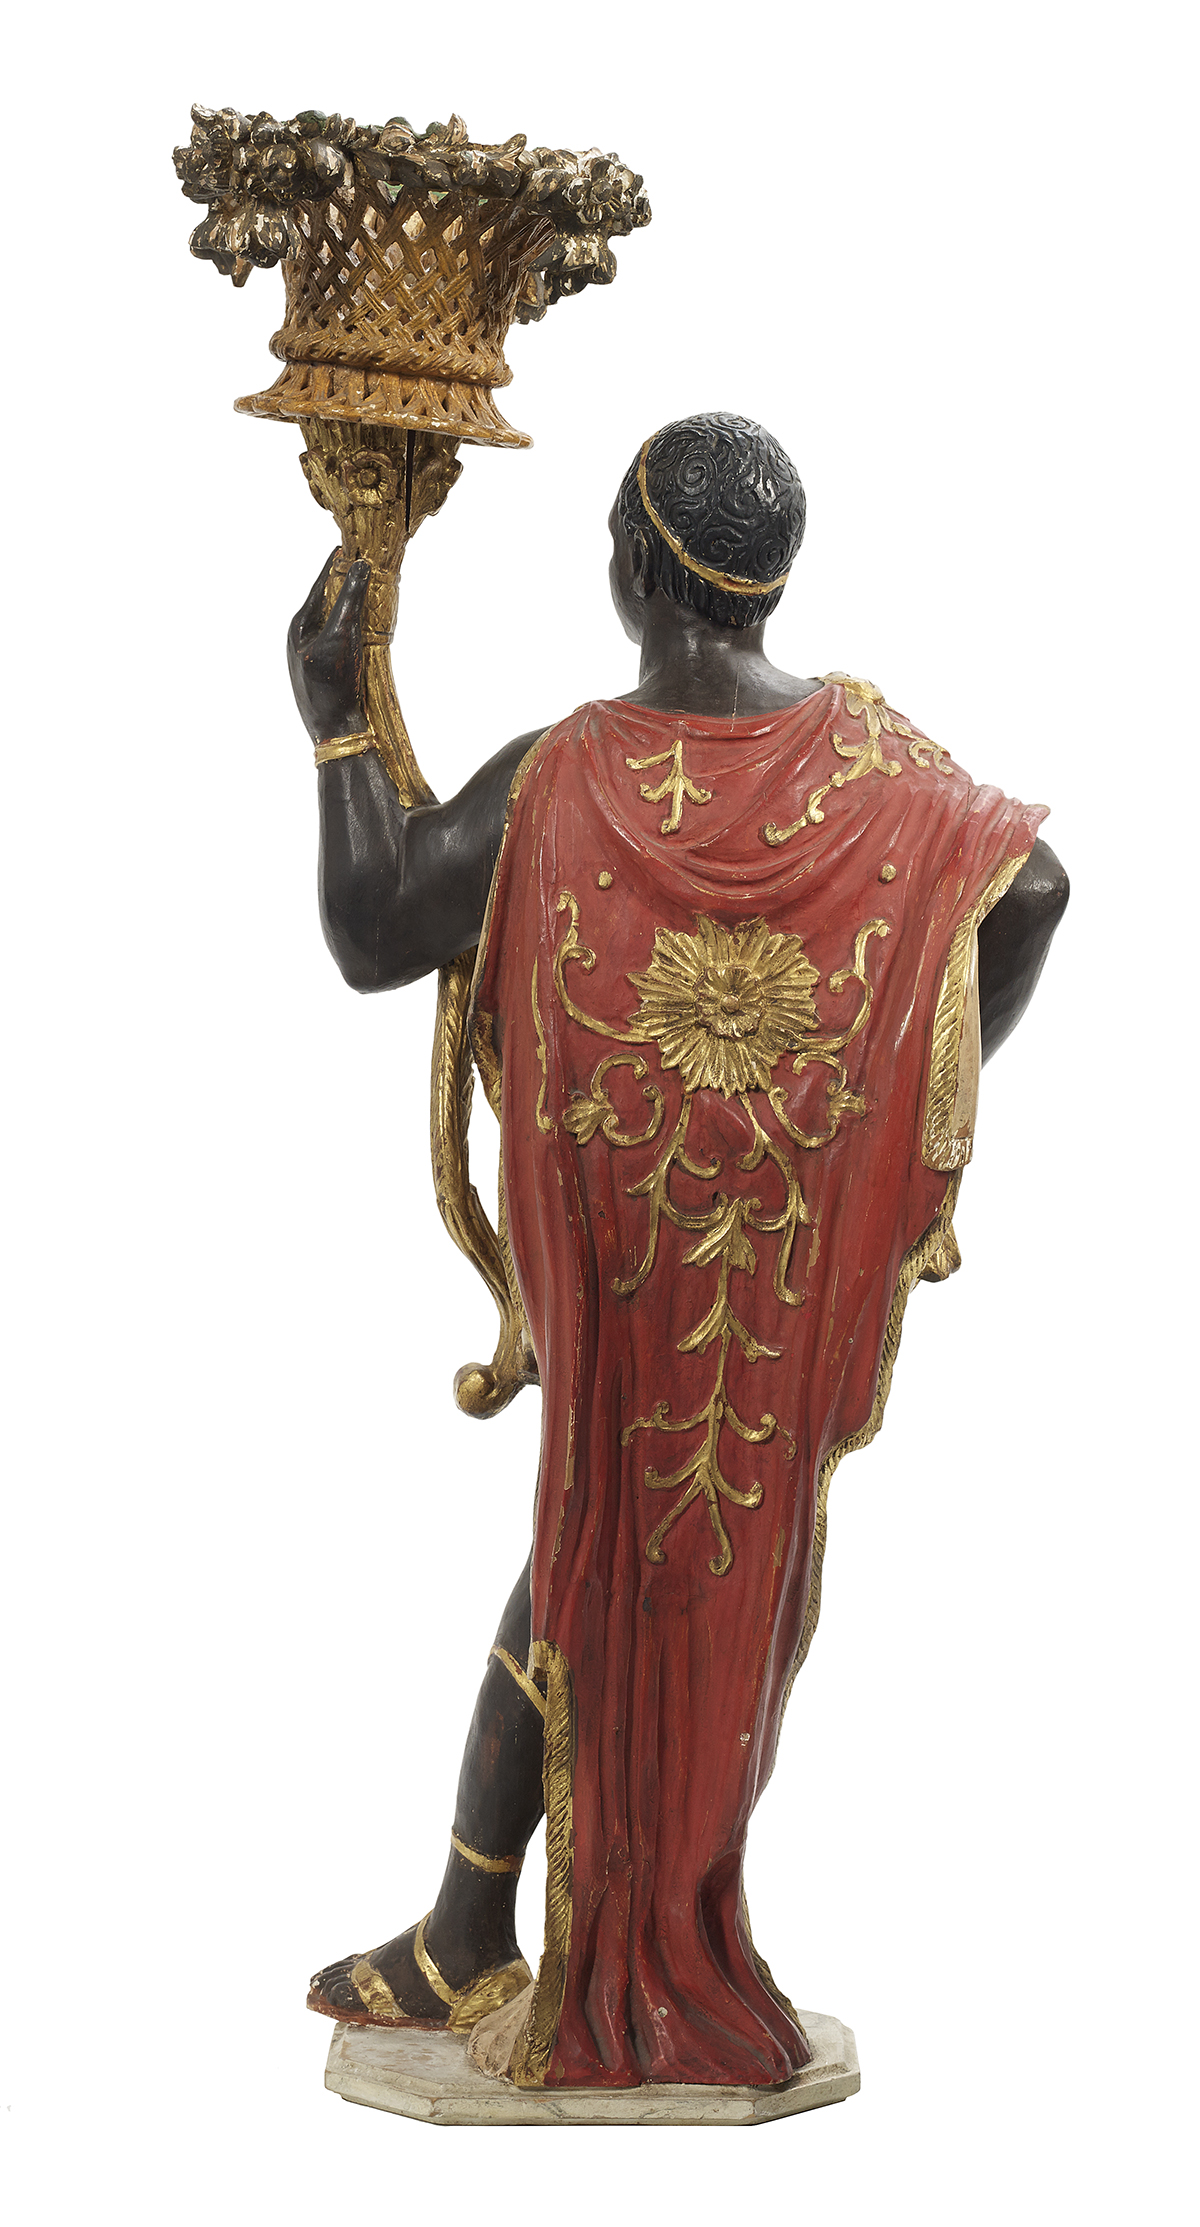 Lot 96 - Carved, Painted and Parcel-Gilt Blackamoor